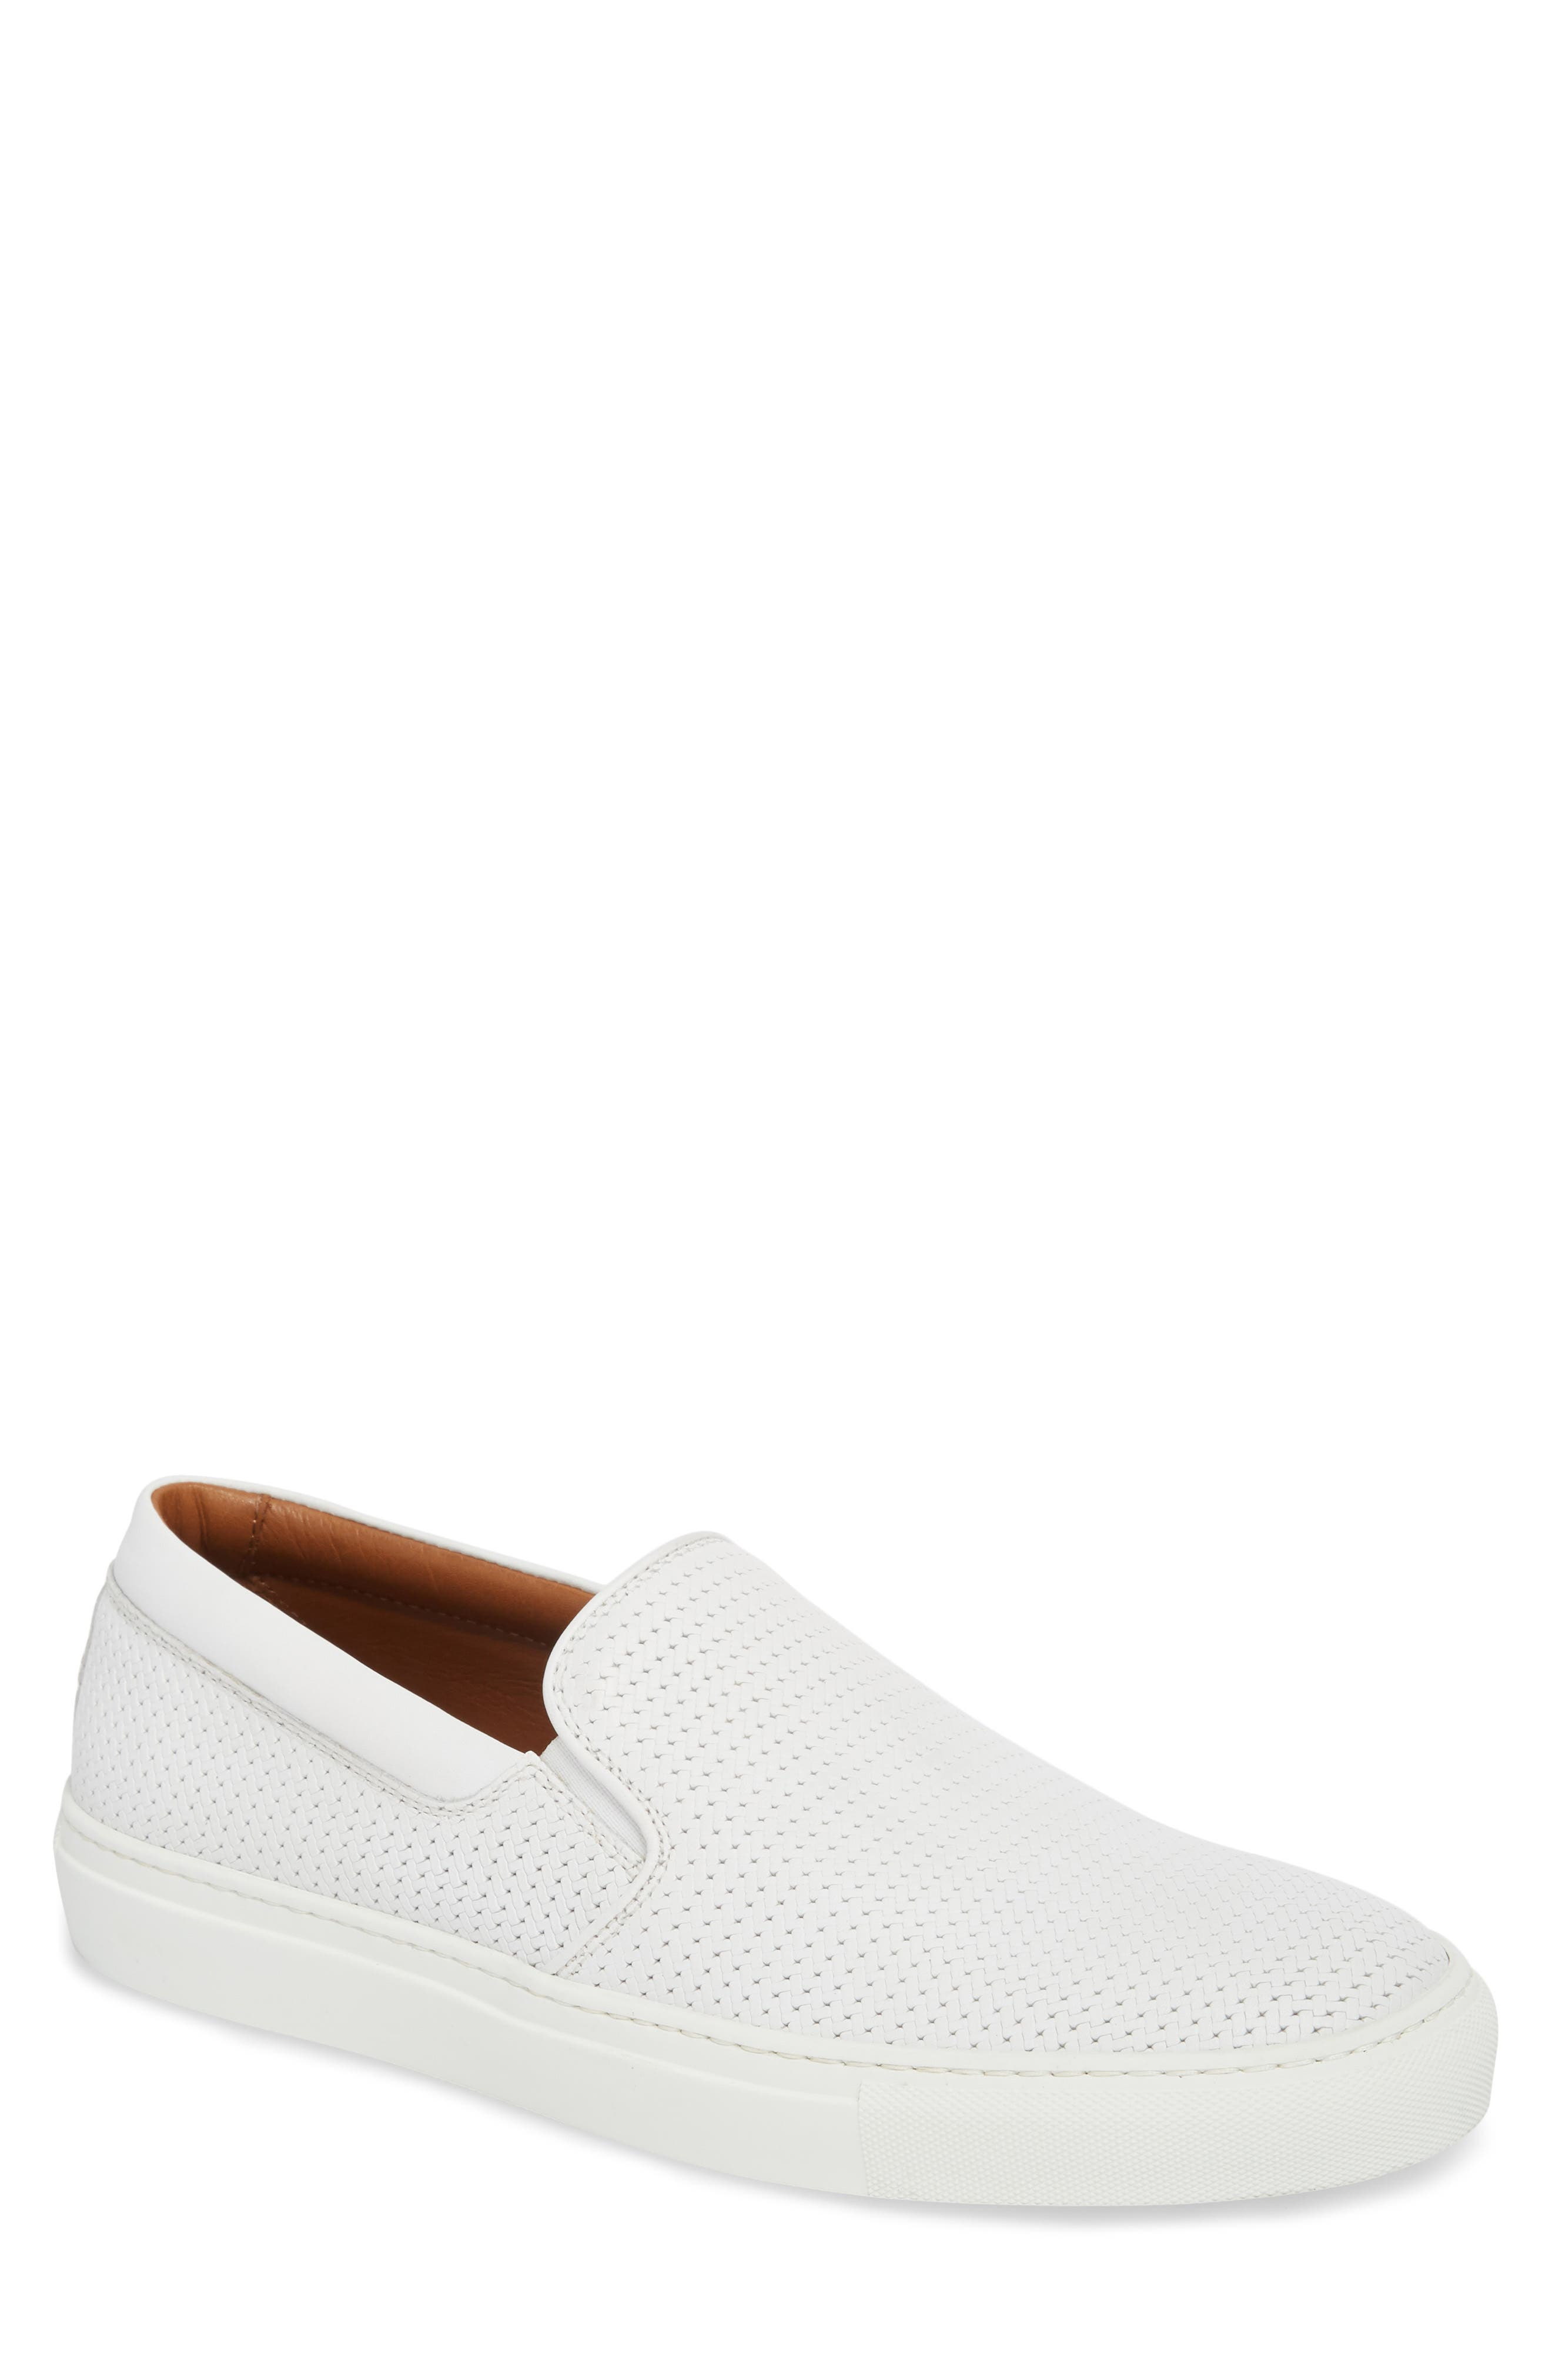 'Anderson' Slip-On,                         Main,                         color, White